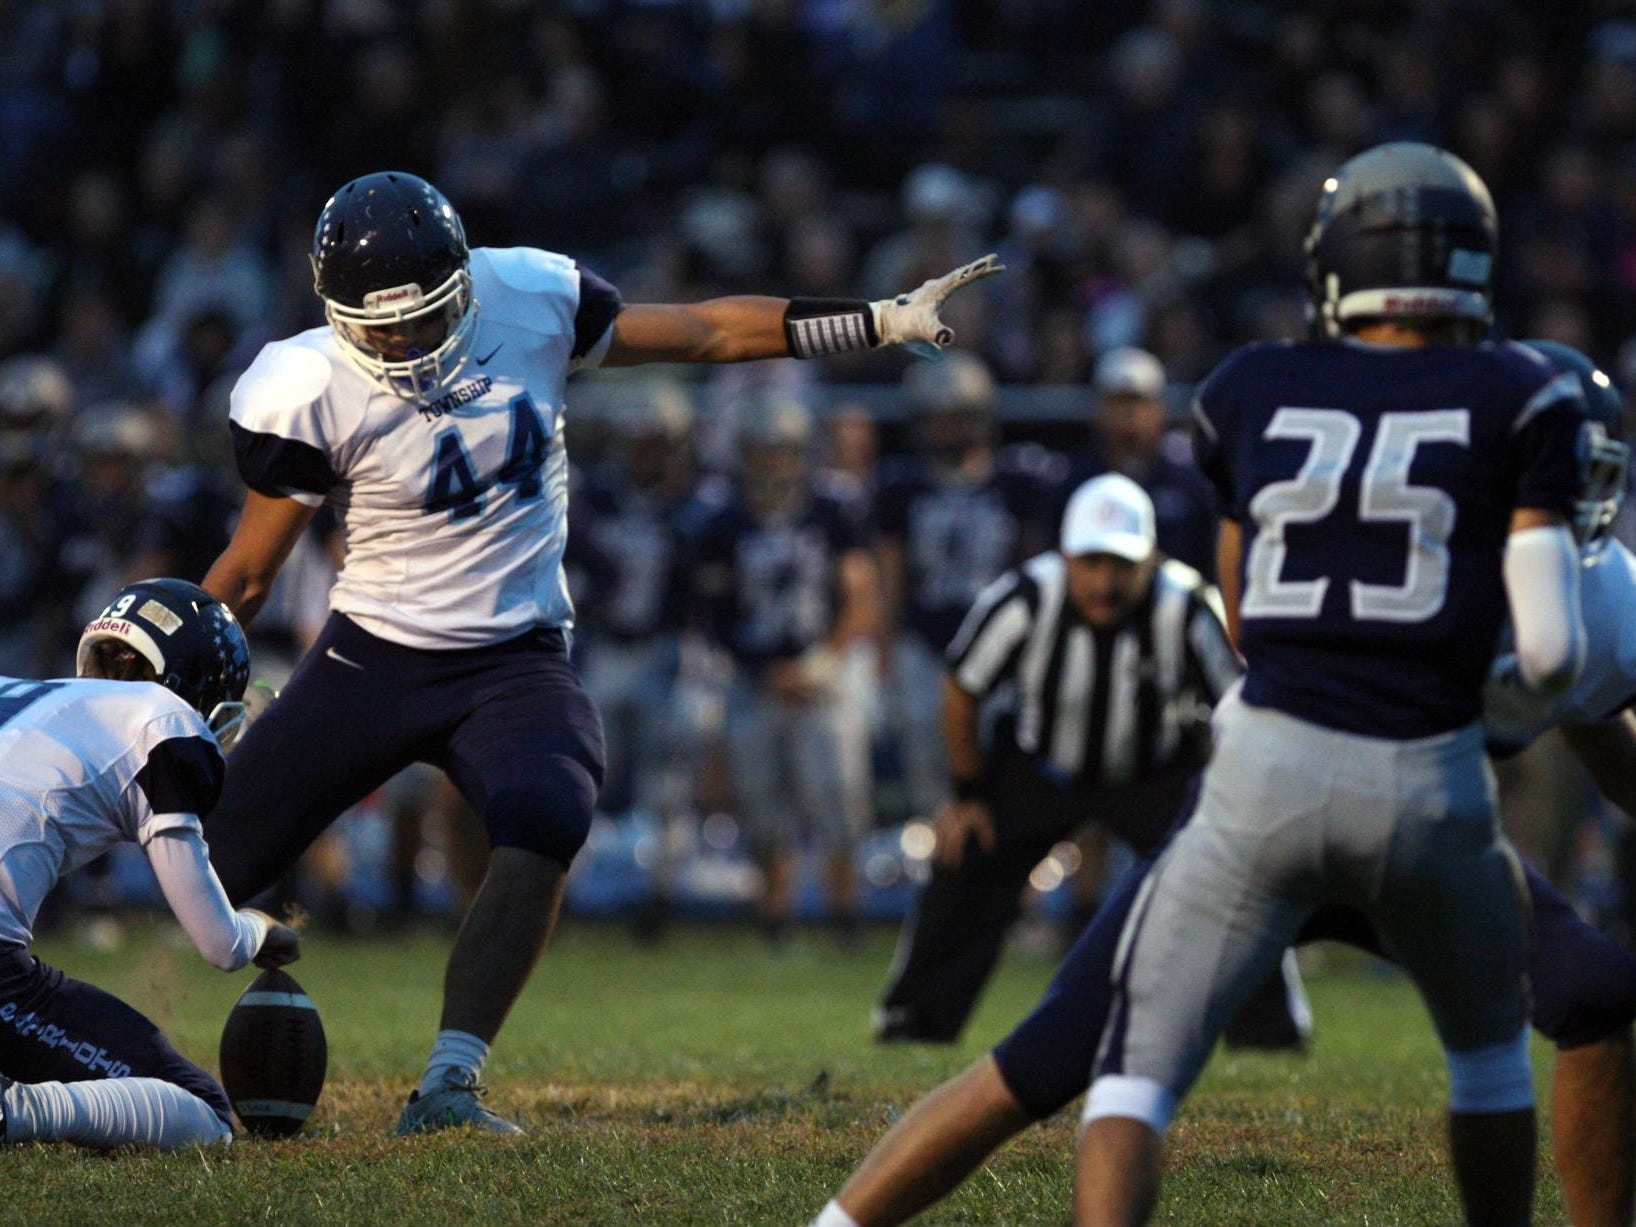 Nick Galenti, #44 Freehold Township, kicks a successful extra point with holder Kevin Doherty, #9, as they play Howell in a football game Friday, September 25, 2015, at Howell High School.